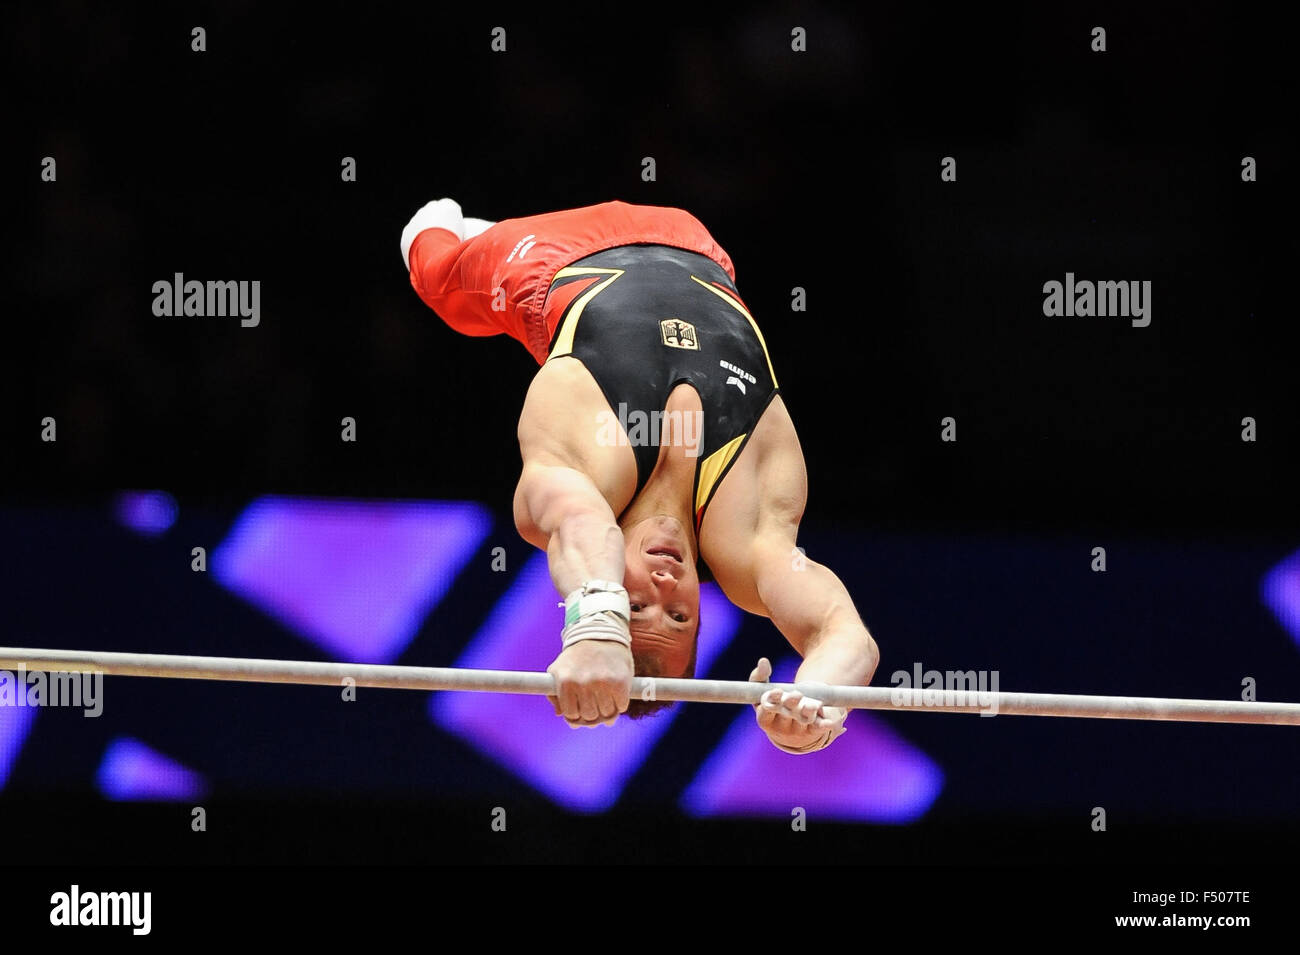 FABIAN HAMBUECHEN from Germany competes on the high bar during the preliminary round of the 2015 World Gymnastics - Stock Image